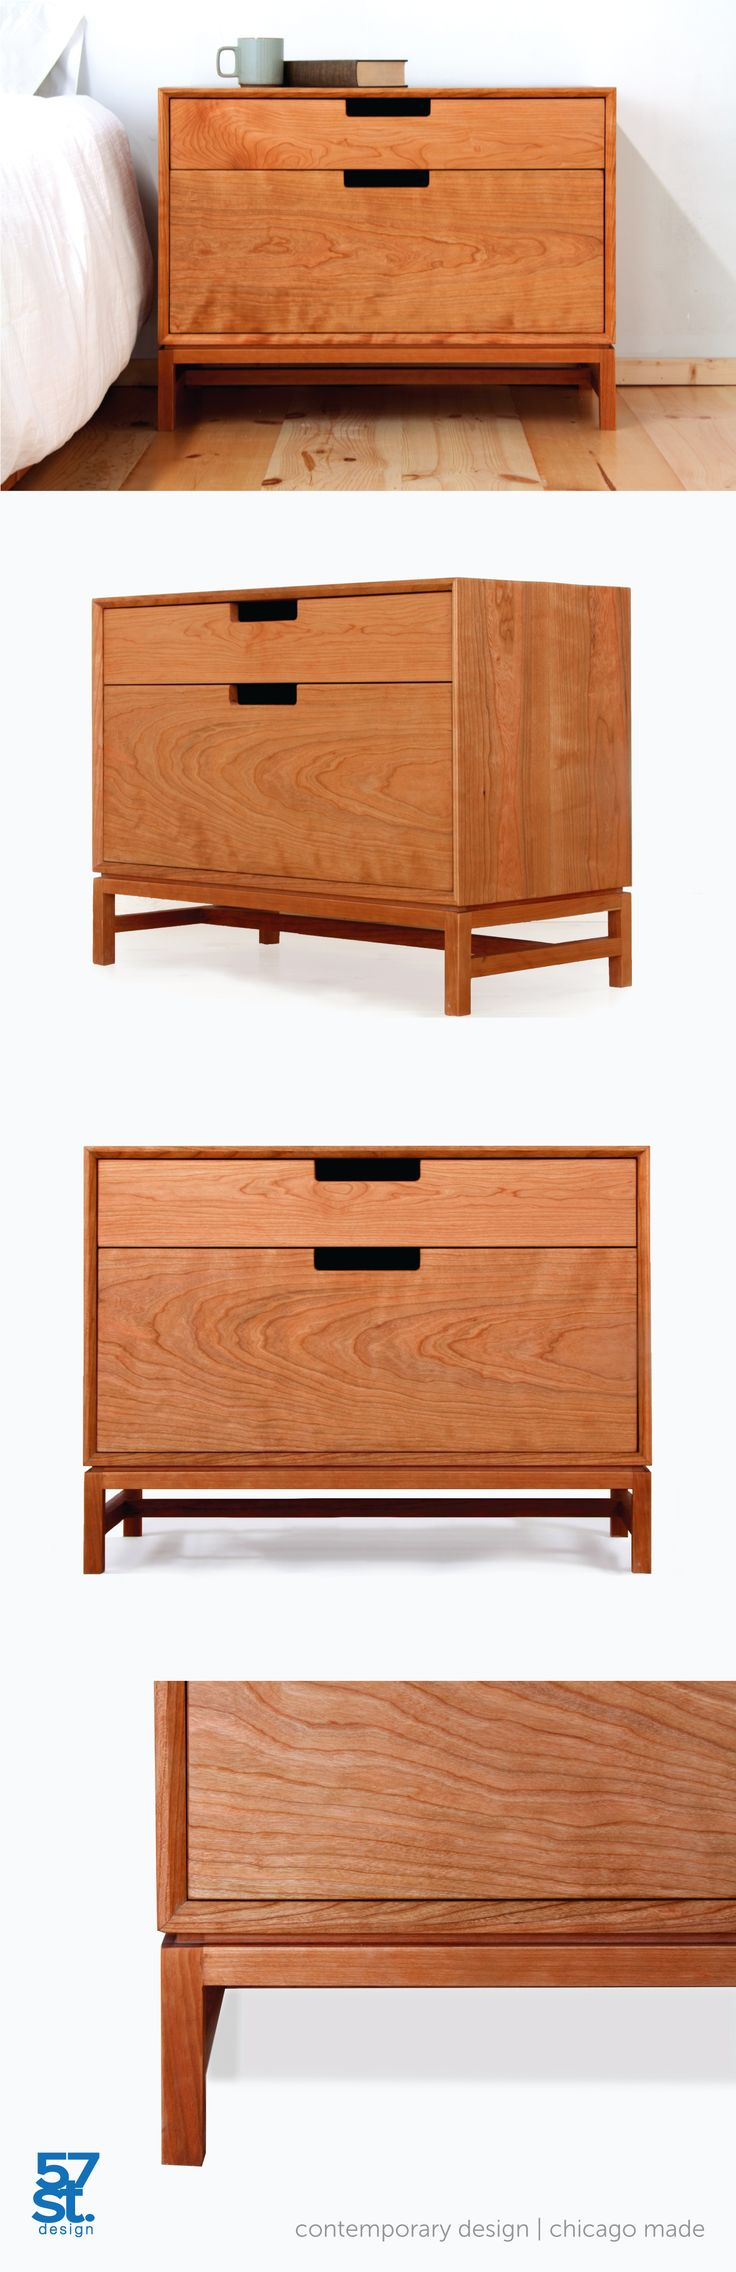 Inspired by Mid-century Modern design, the Forde Nighstand is a simple, carefully crafted nightstand with real functional value. With a single drawer on top and a compartment with a flip-down door for general storage below. In solid, American cherry with a Danish oil and wax finish. Proudly made in Chicago.